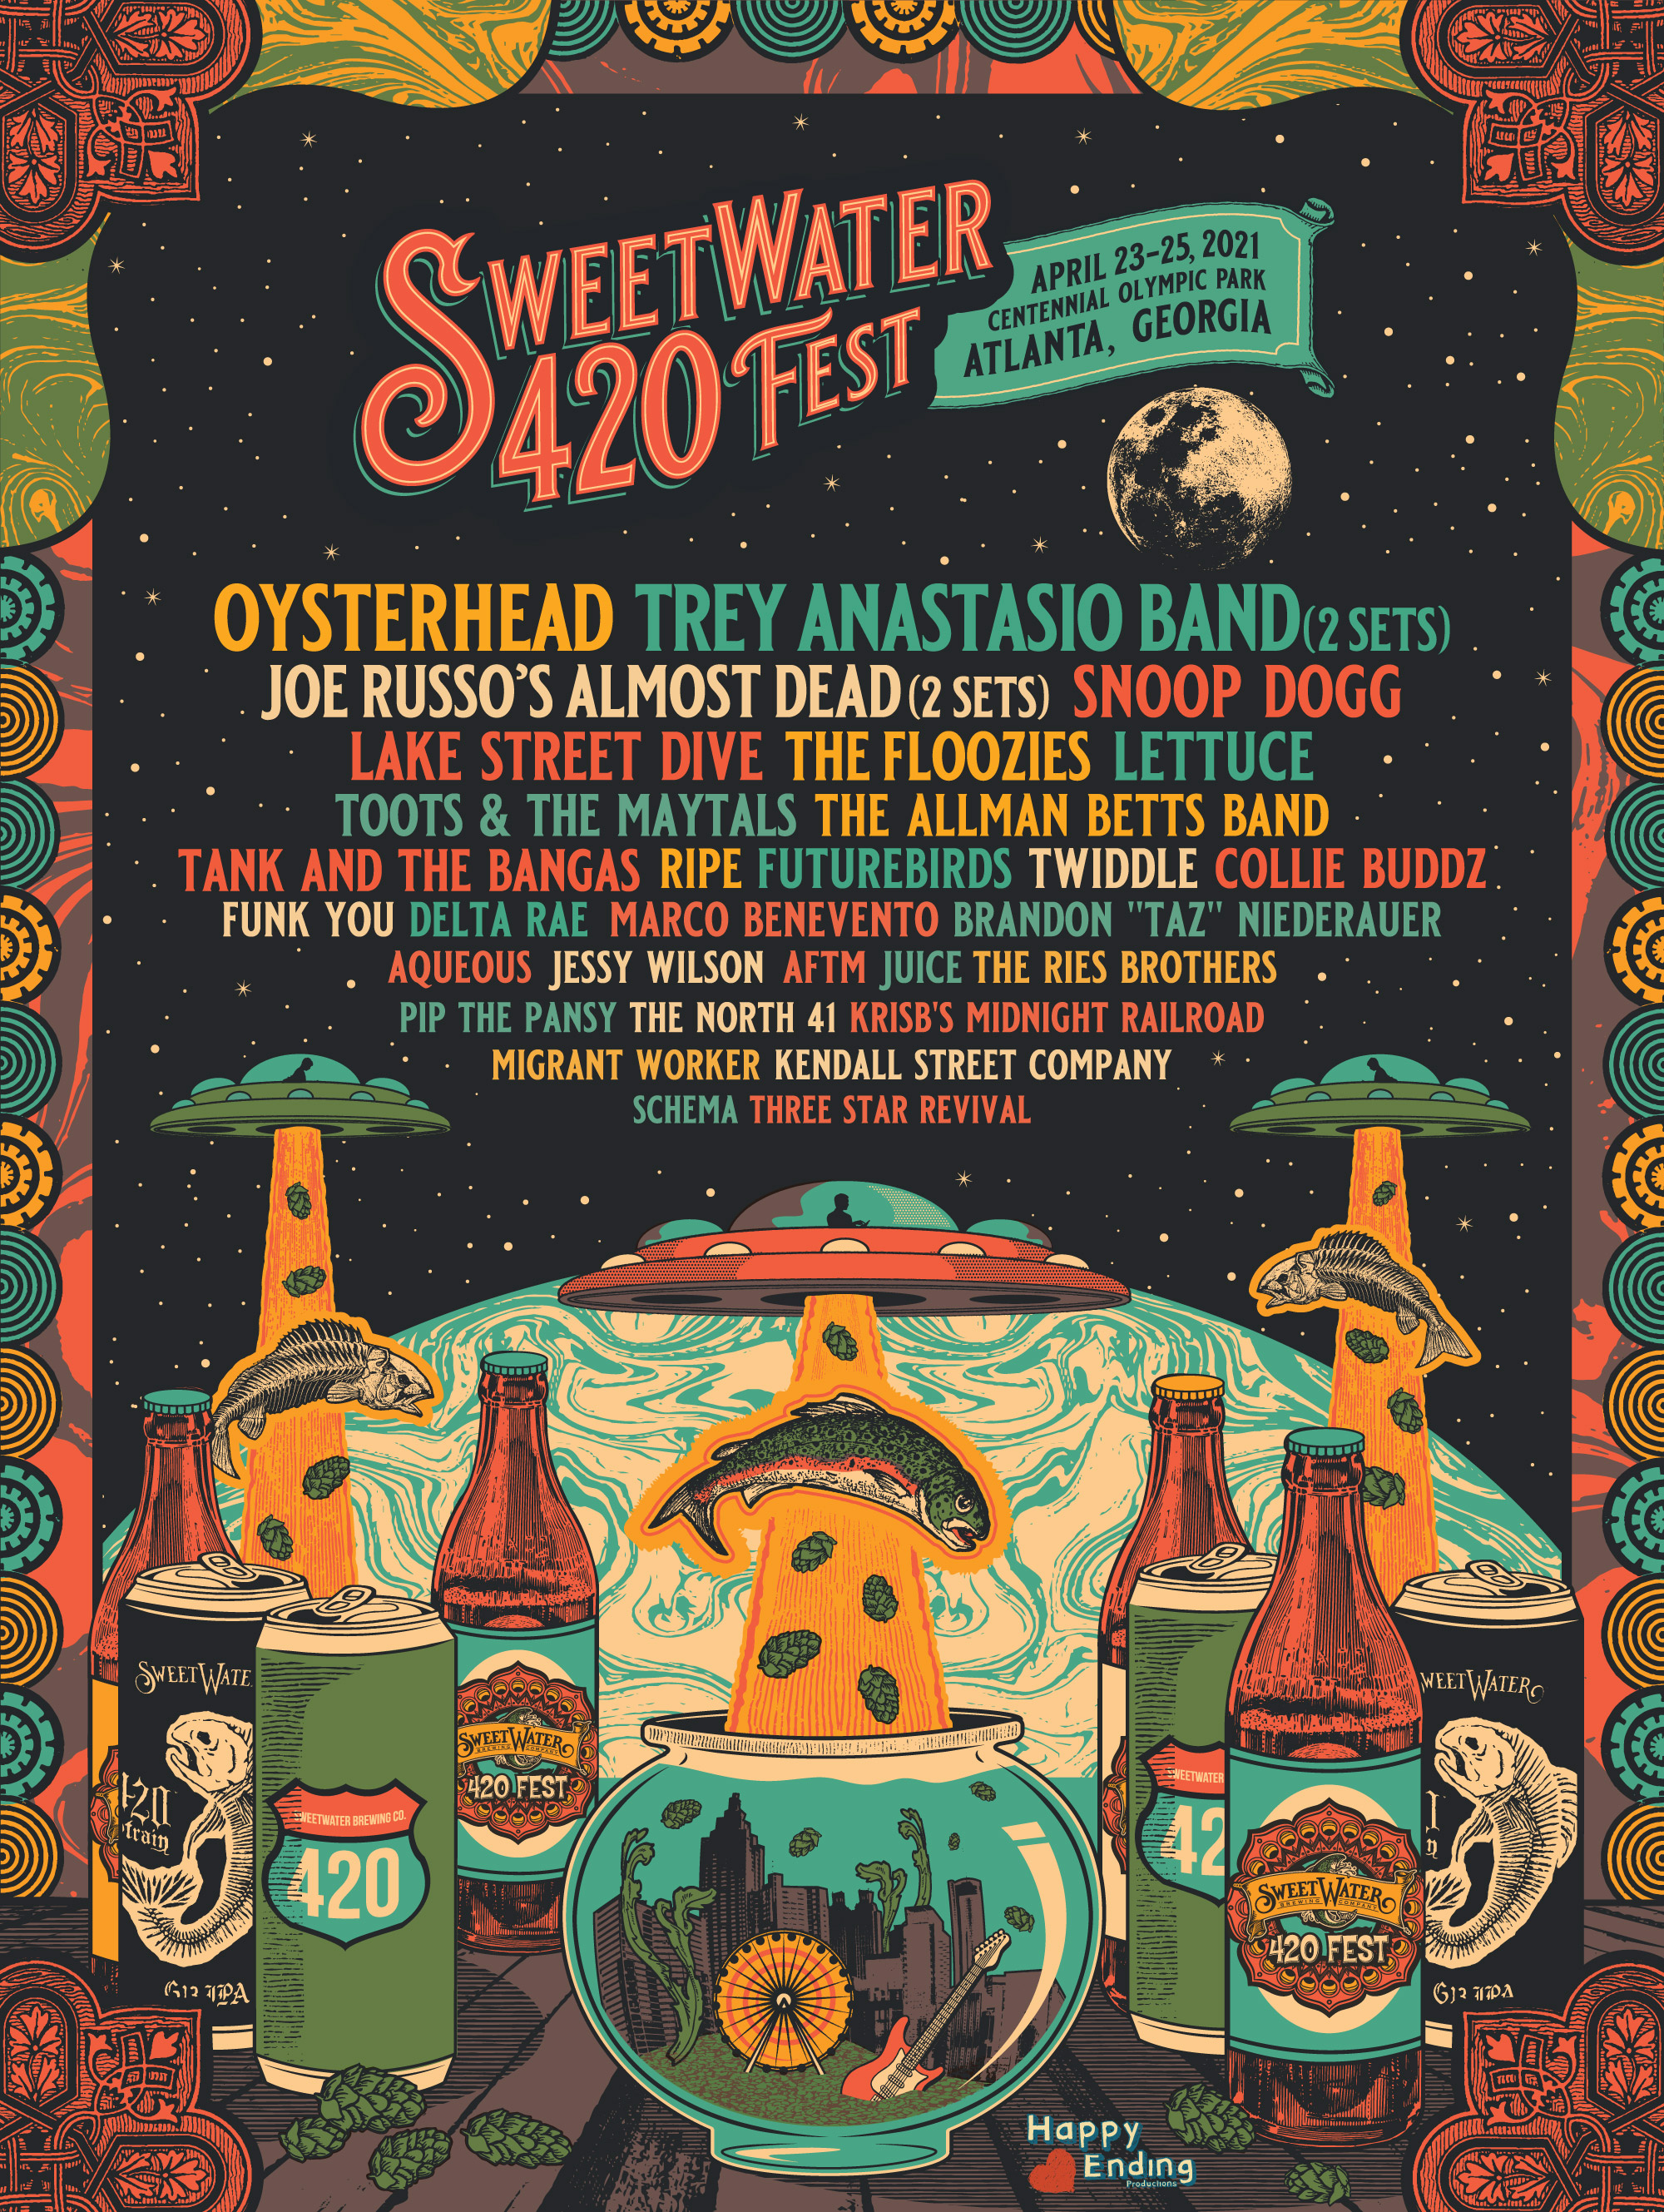 SweetWater 420 Fest 2021 lineup